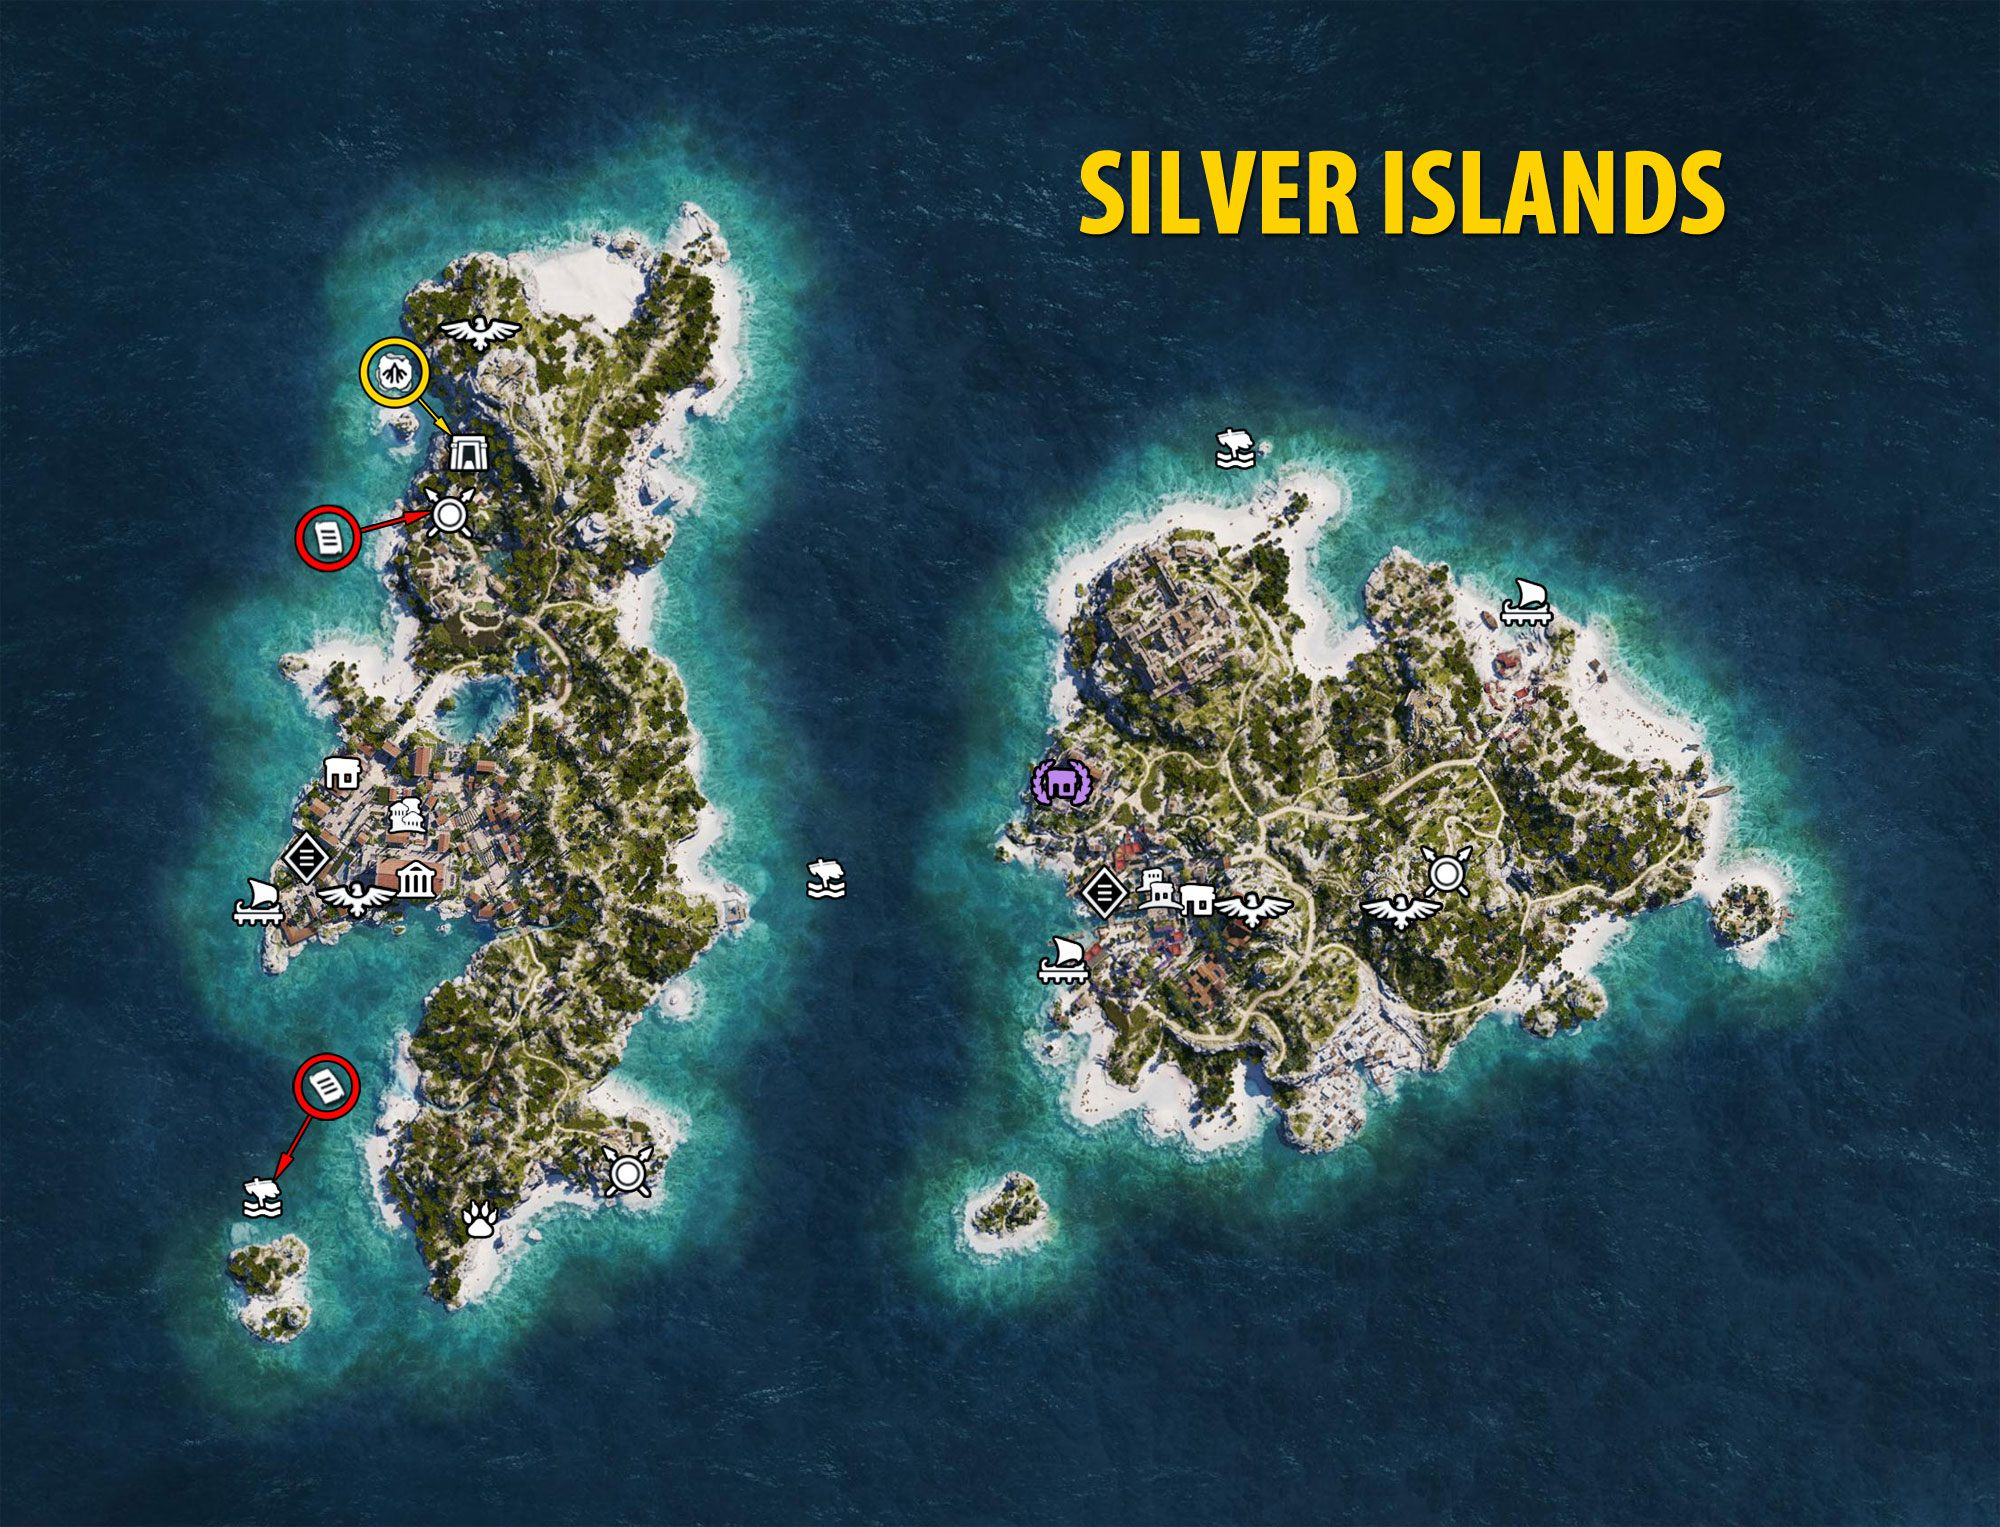 Silver Islands Map - Assassin's Creed Odyssey